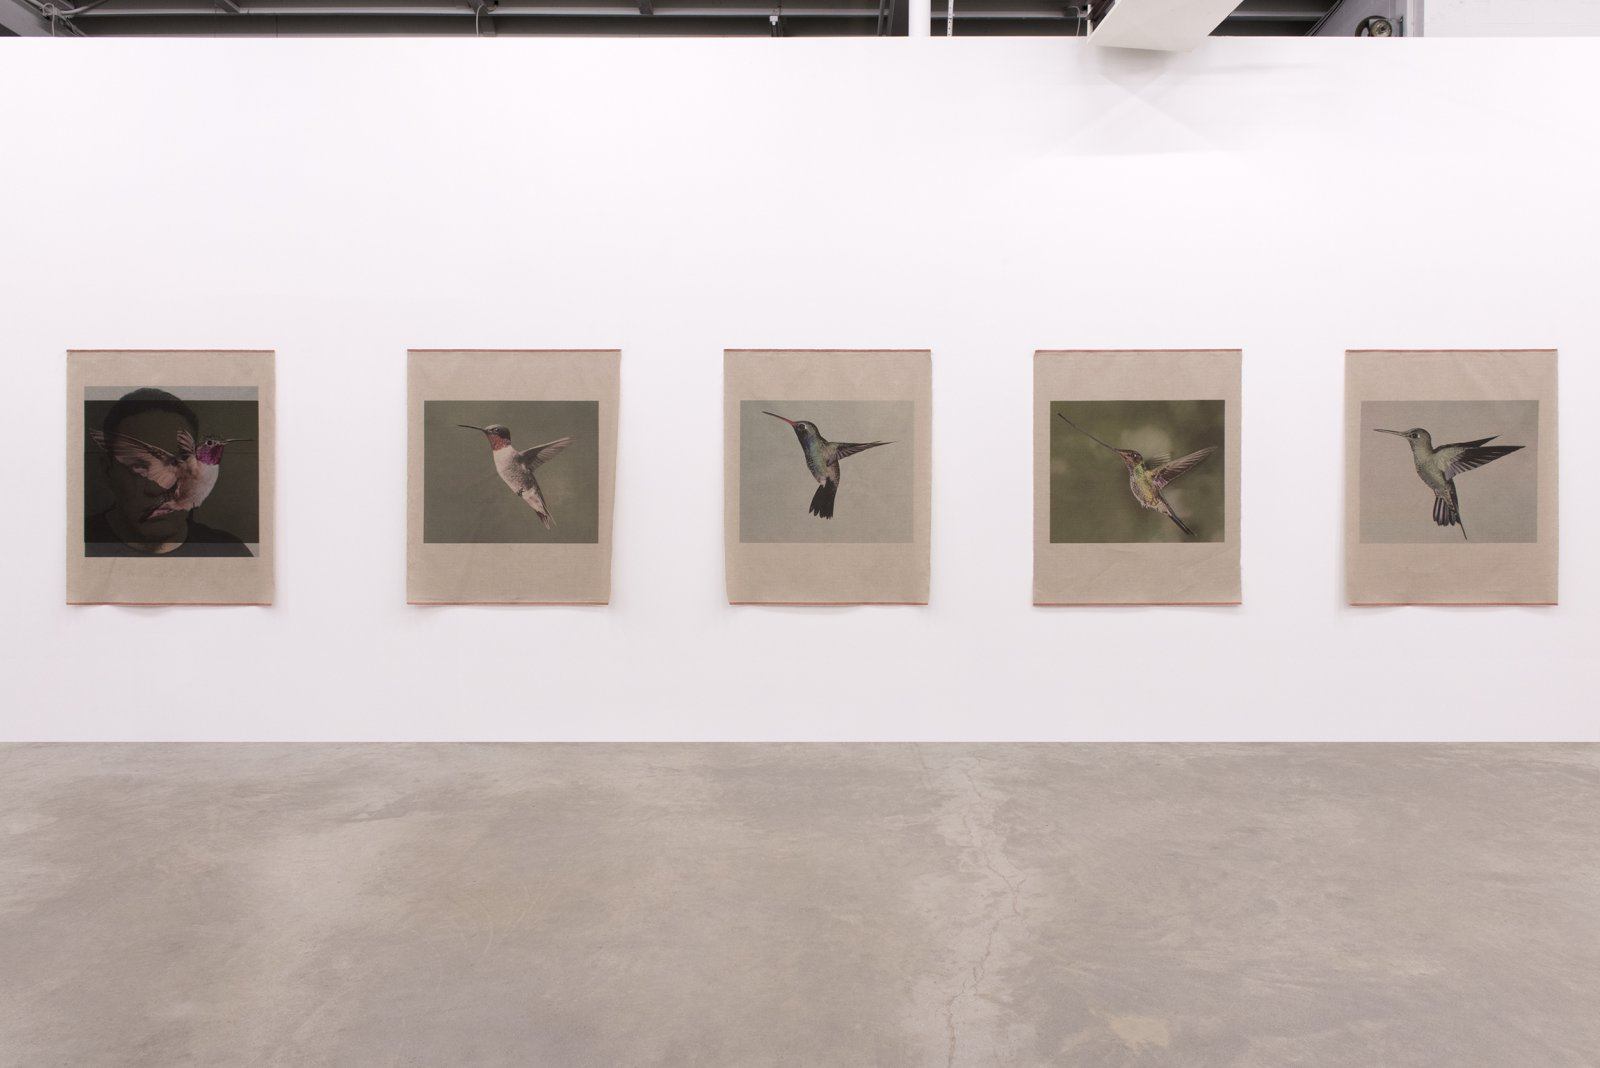 Duane Linklater, You chose feathers, 2014, 5 inkjet prints on linen, nails, each print: 54 x 43 inches (136 x 110 cm) by Duane Linklater